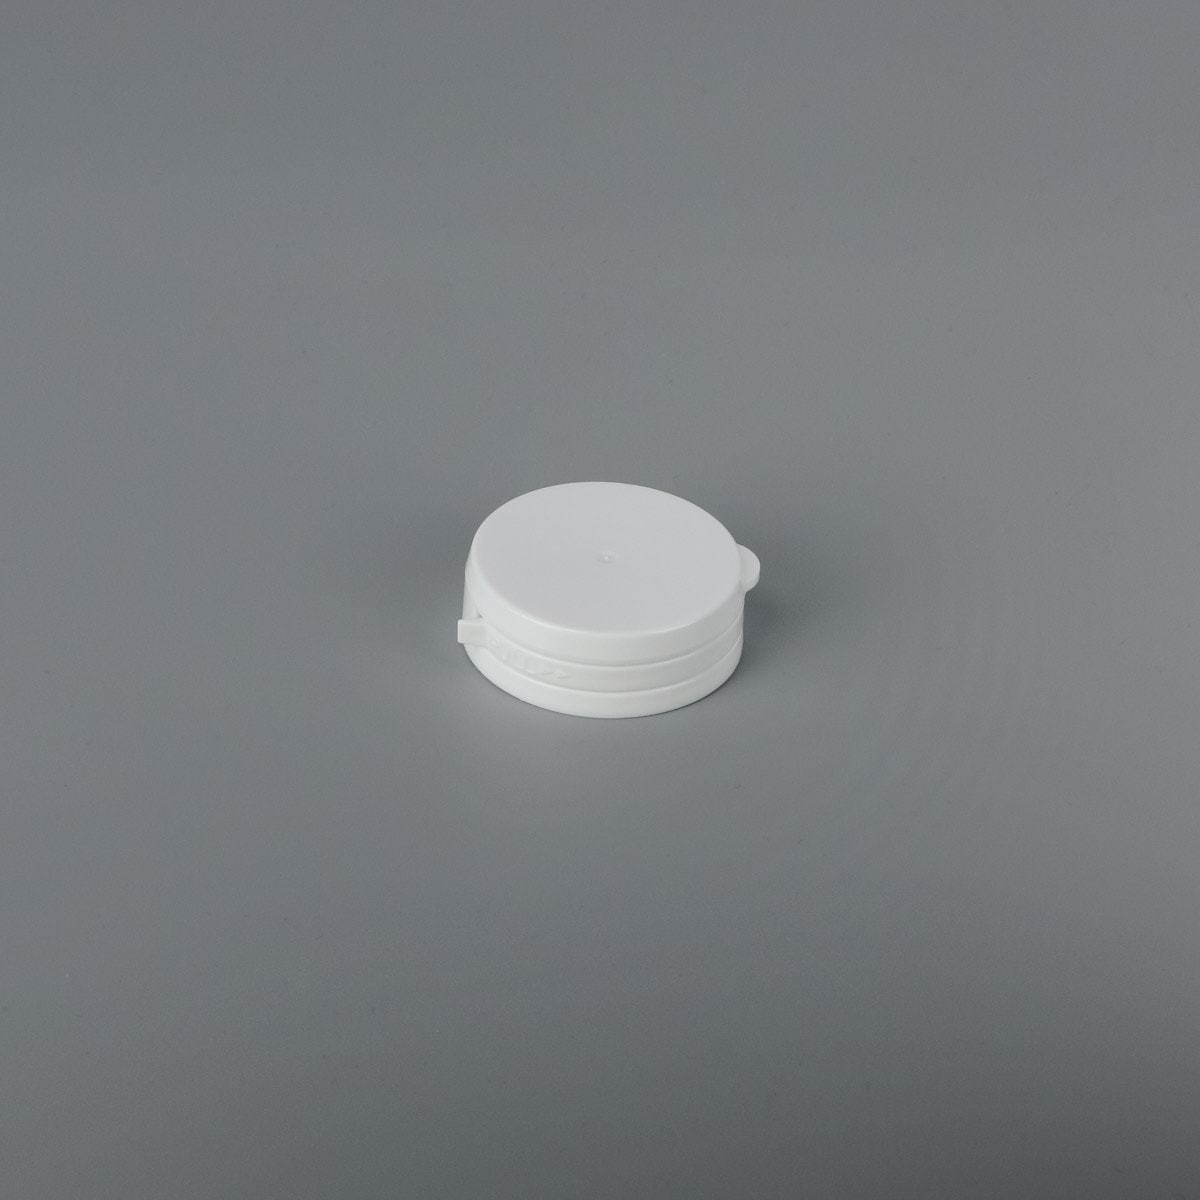 38-400 Hinge Guard White tamper evident cap with pressure seal - CASED 2100 - Rock Bottom Bottles / Packaging Company LLC